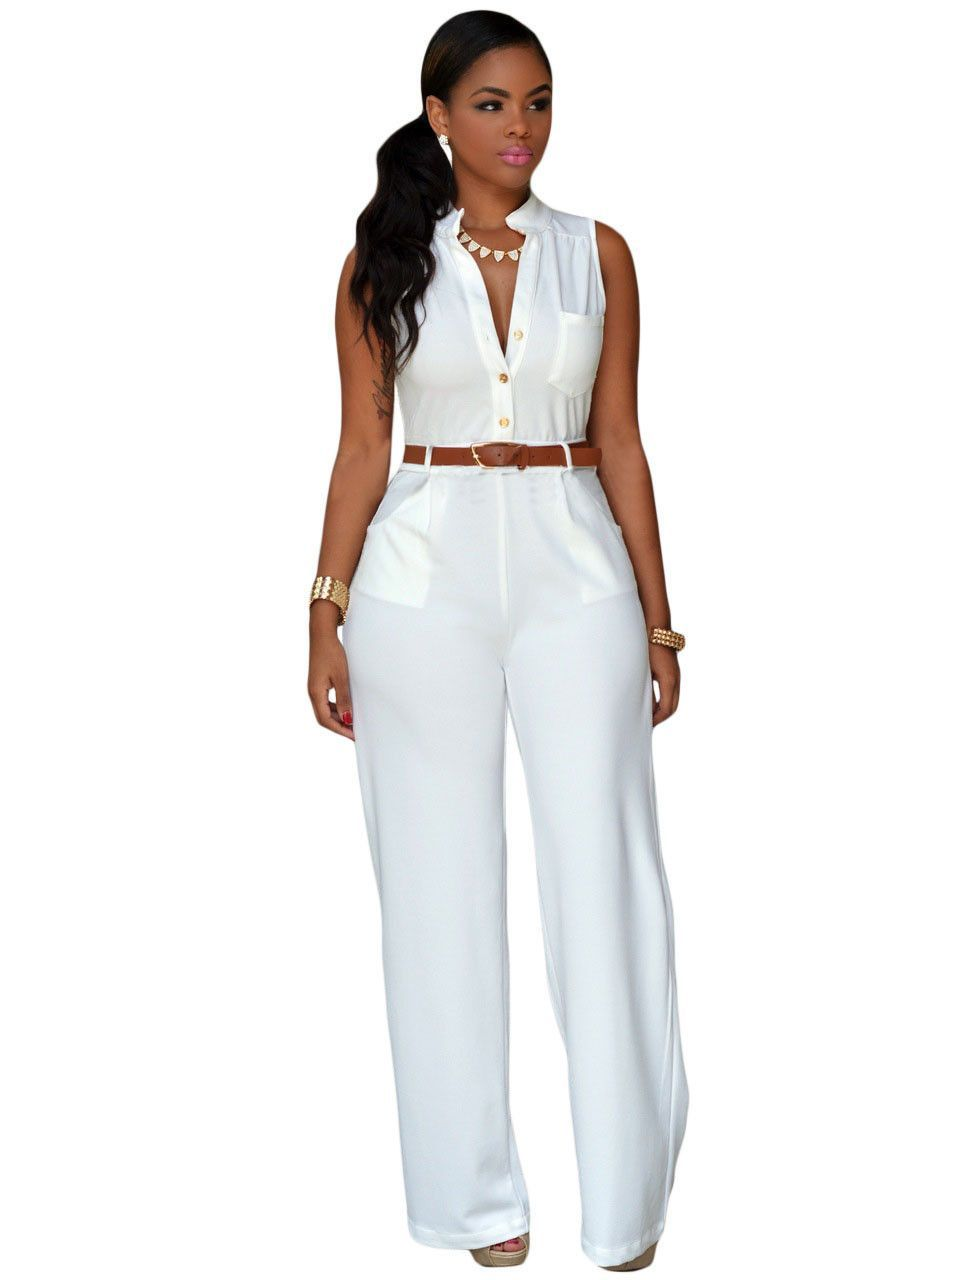 f8fa3f2aa6fe Zkess Jumpsuit Long Pants Women Rompers Sleeveless 2XL V-neck 2016 Belt  Solid Sexy Night Club Elegant Slim Jumpsuits Overalls